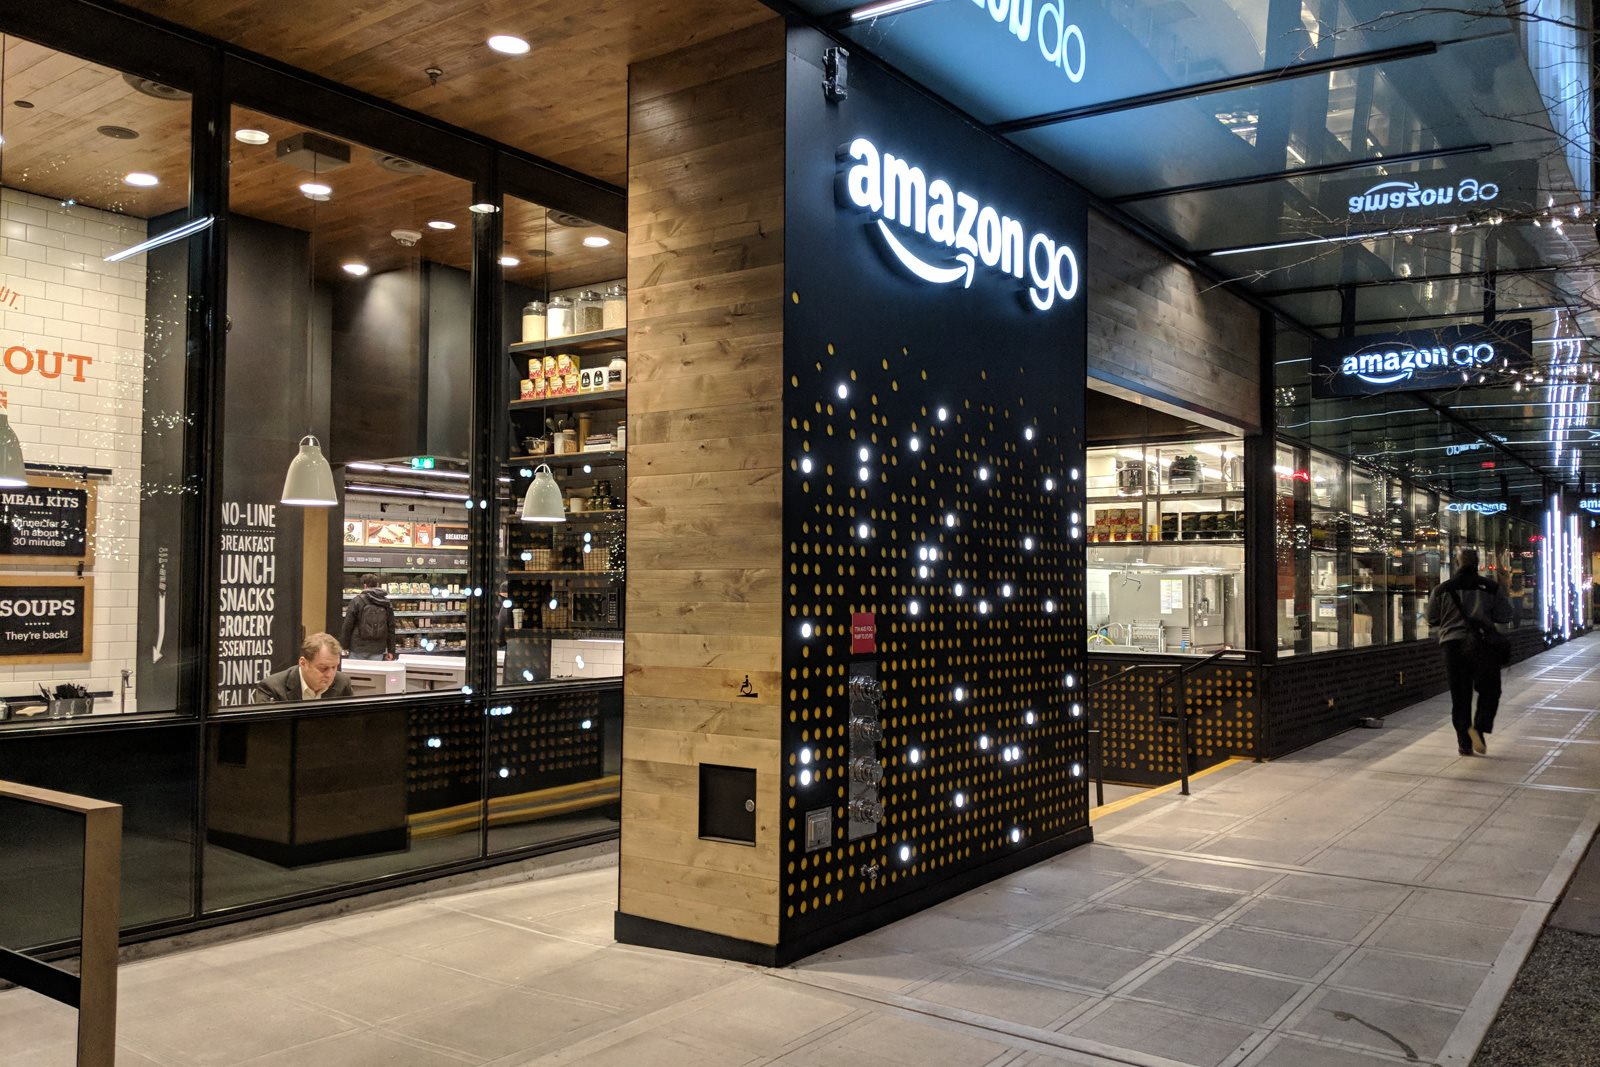 AmazonGo is minutes from the community at Stratus, 820 Lenora St., WA